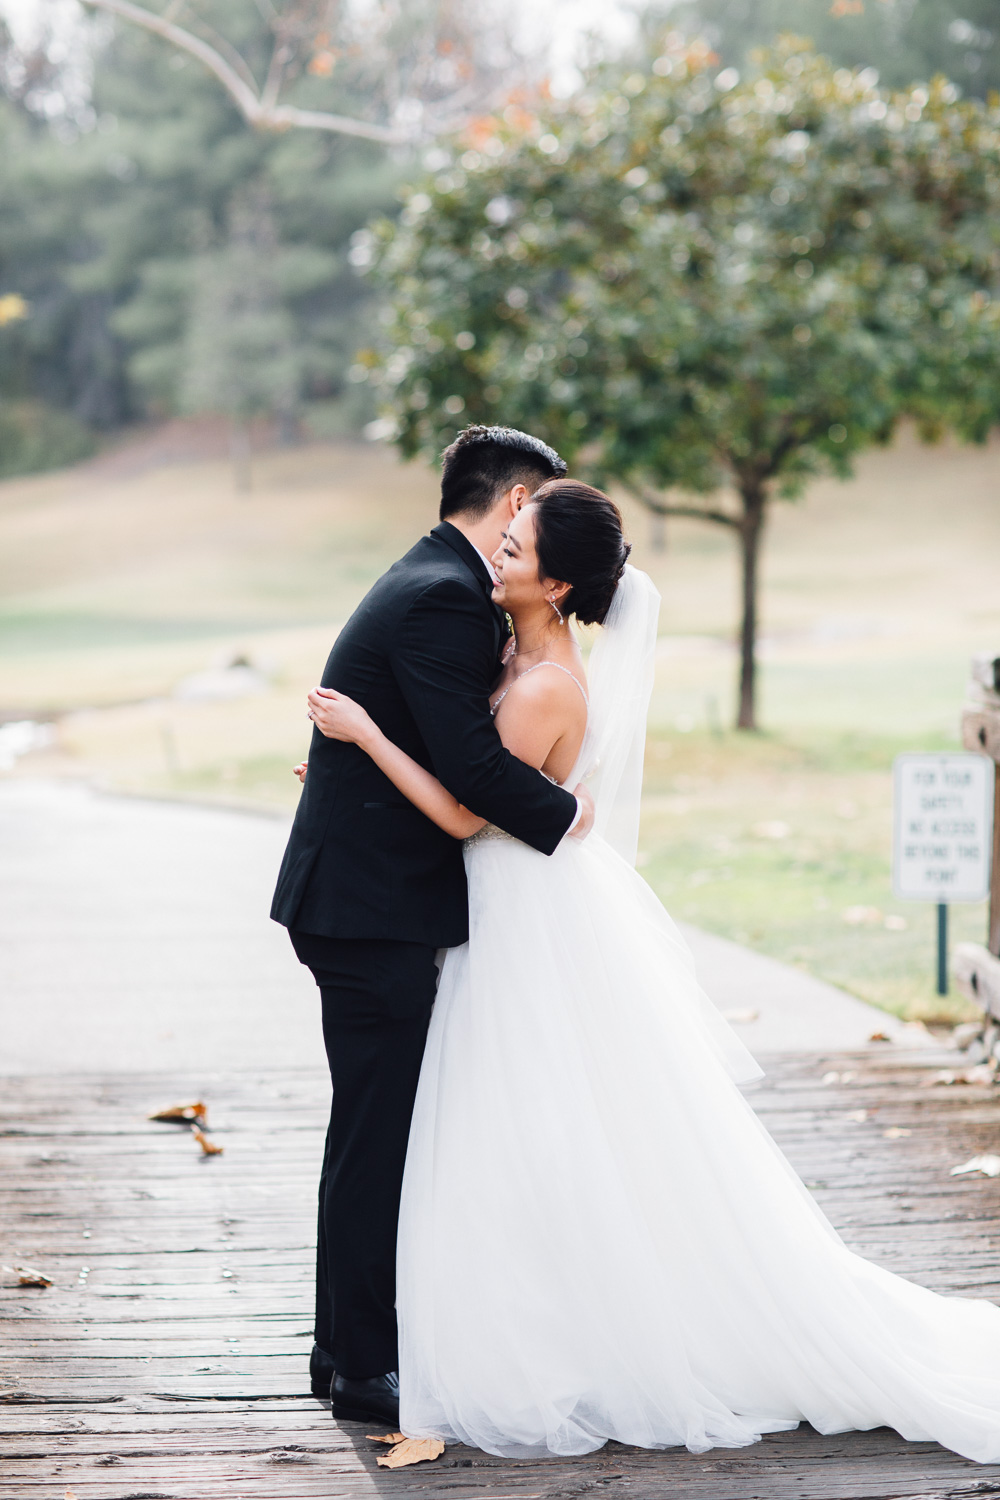 Forever Taeken Wedding Ceremony at Coyote Hills Golf Club